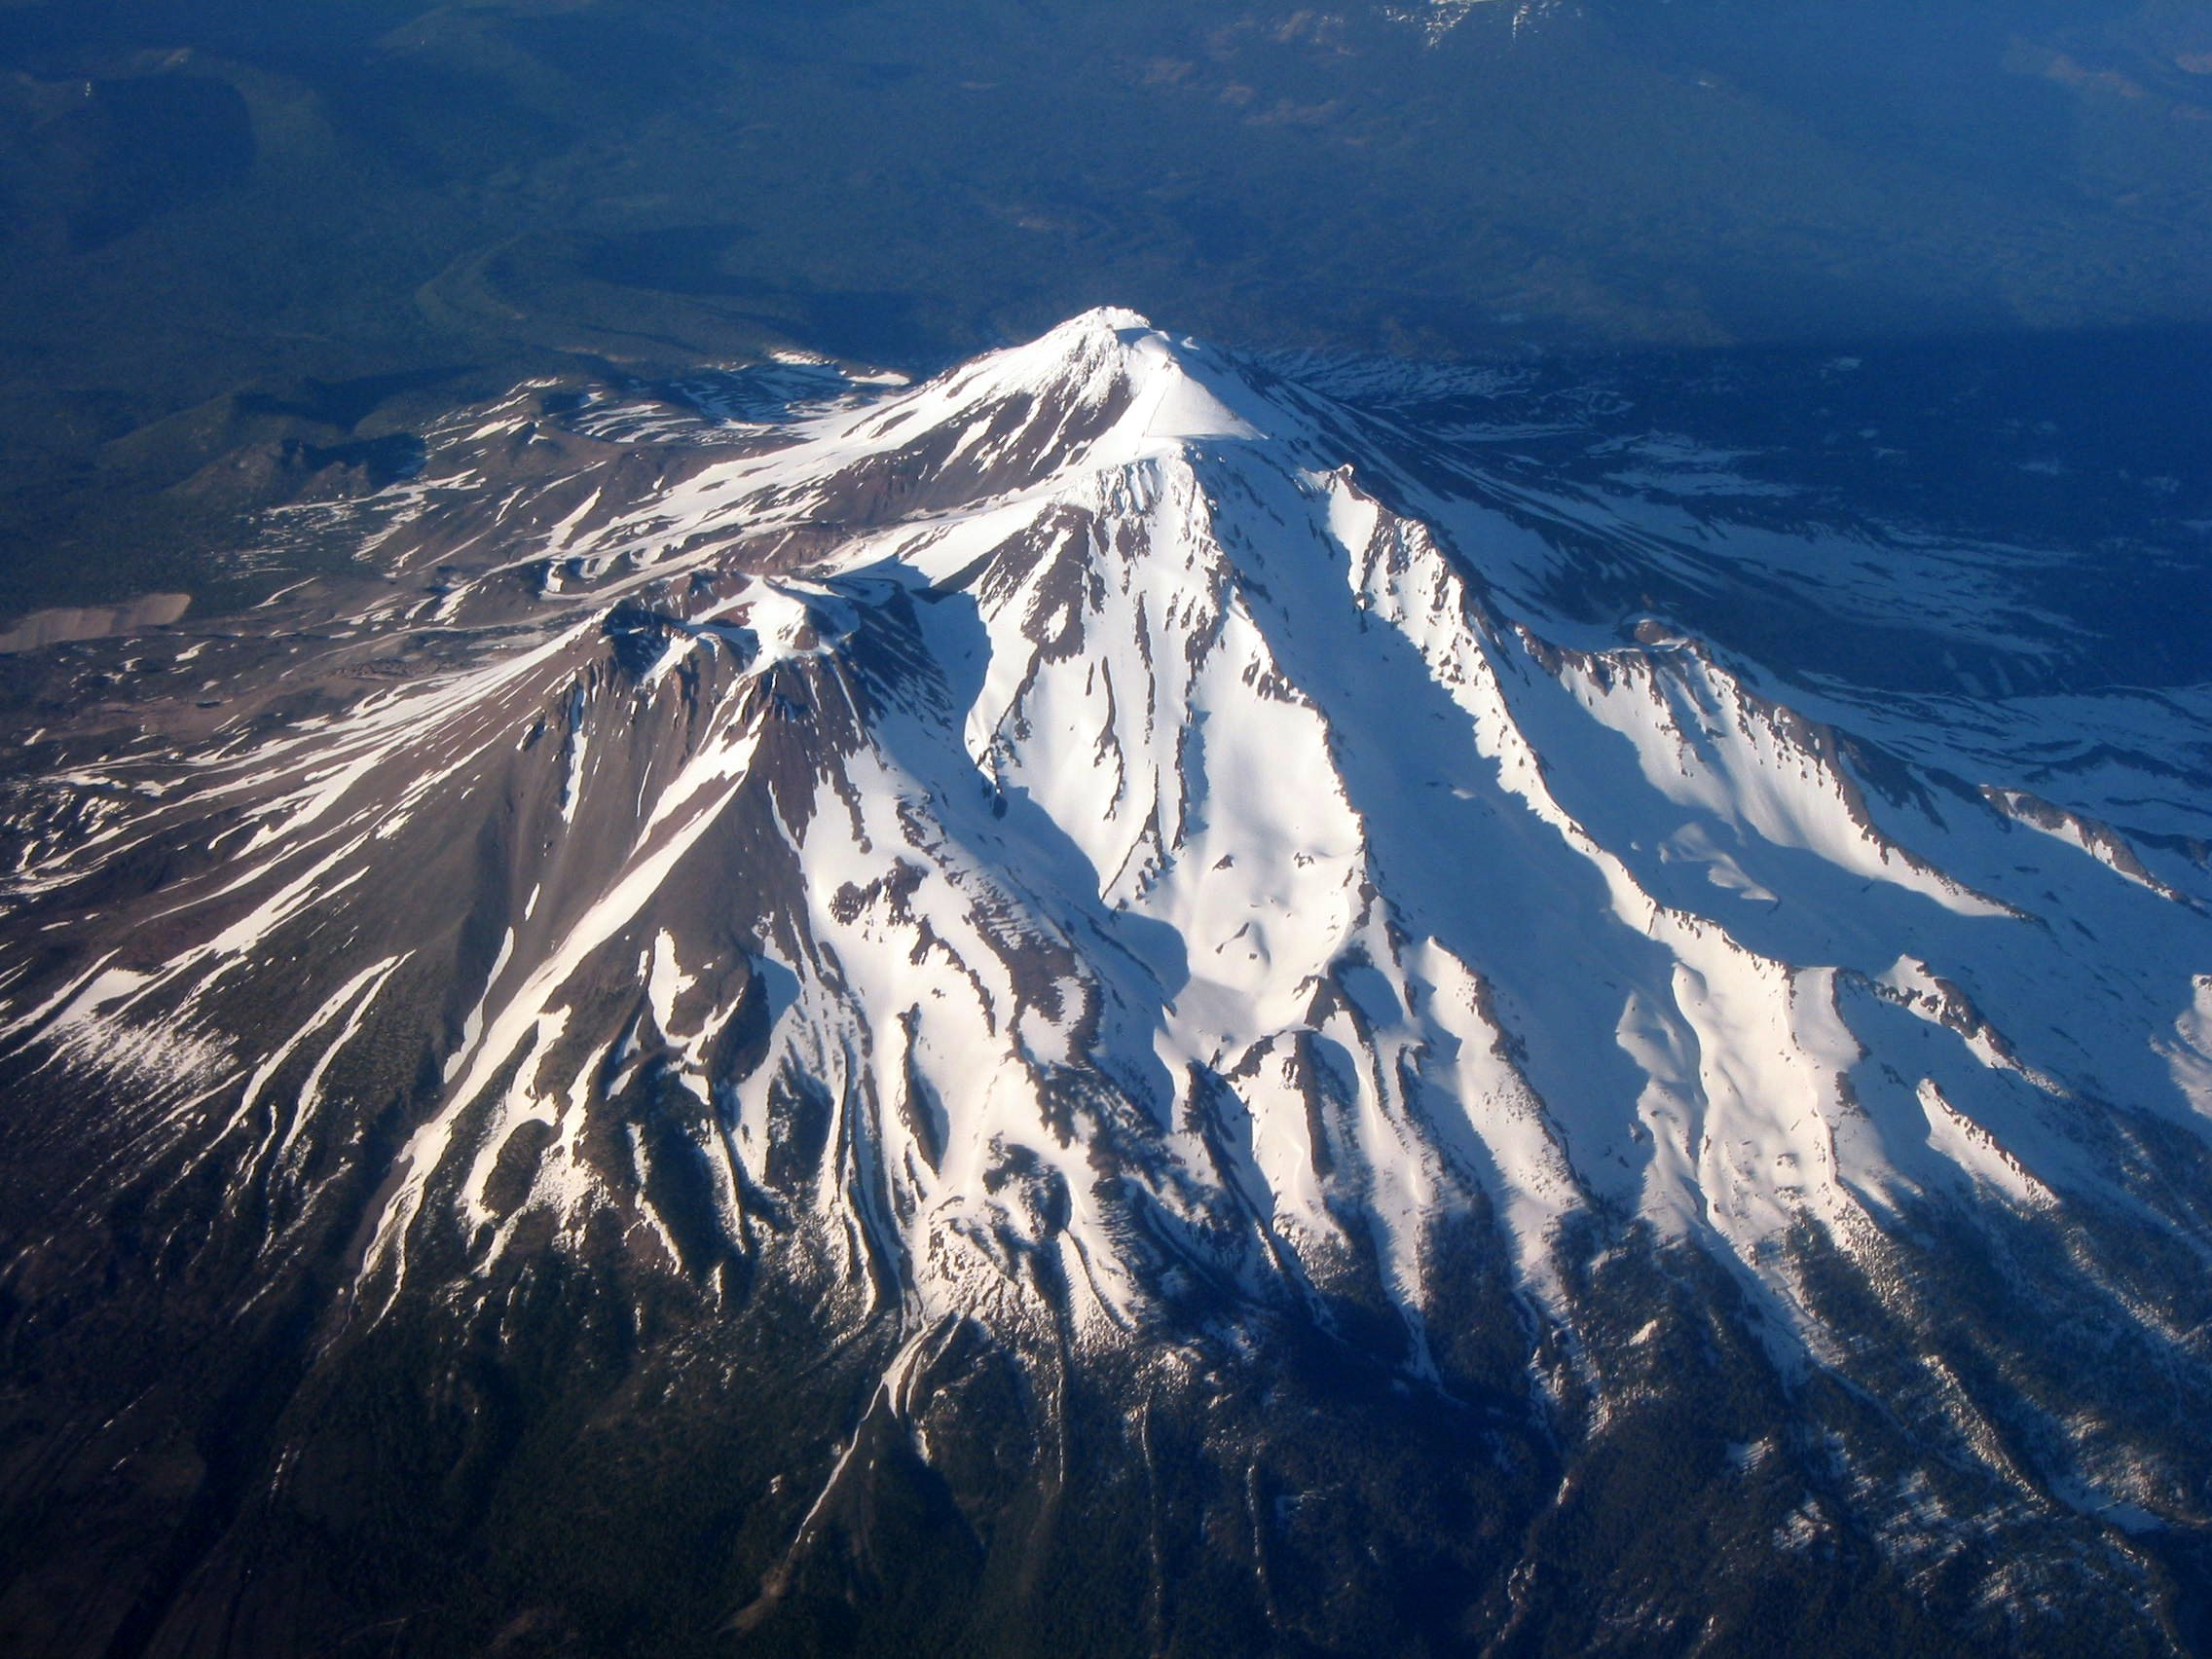 http://upload.wikimedia.org/wikipedia/commons/2/22/MtShasta_aerial.JPG